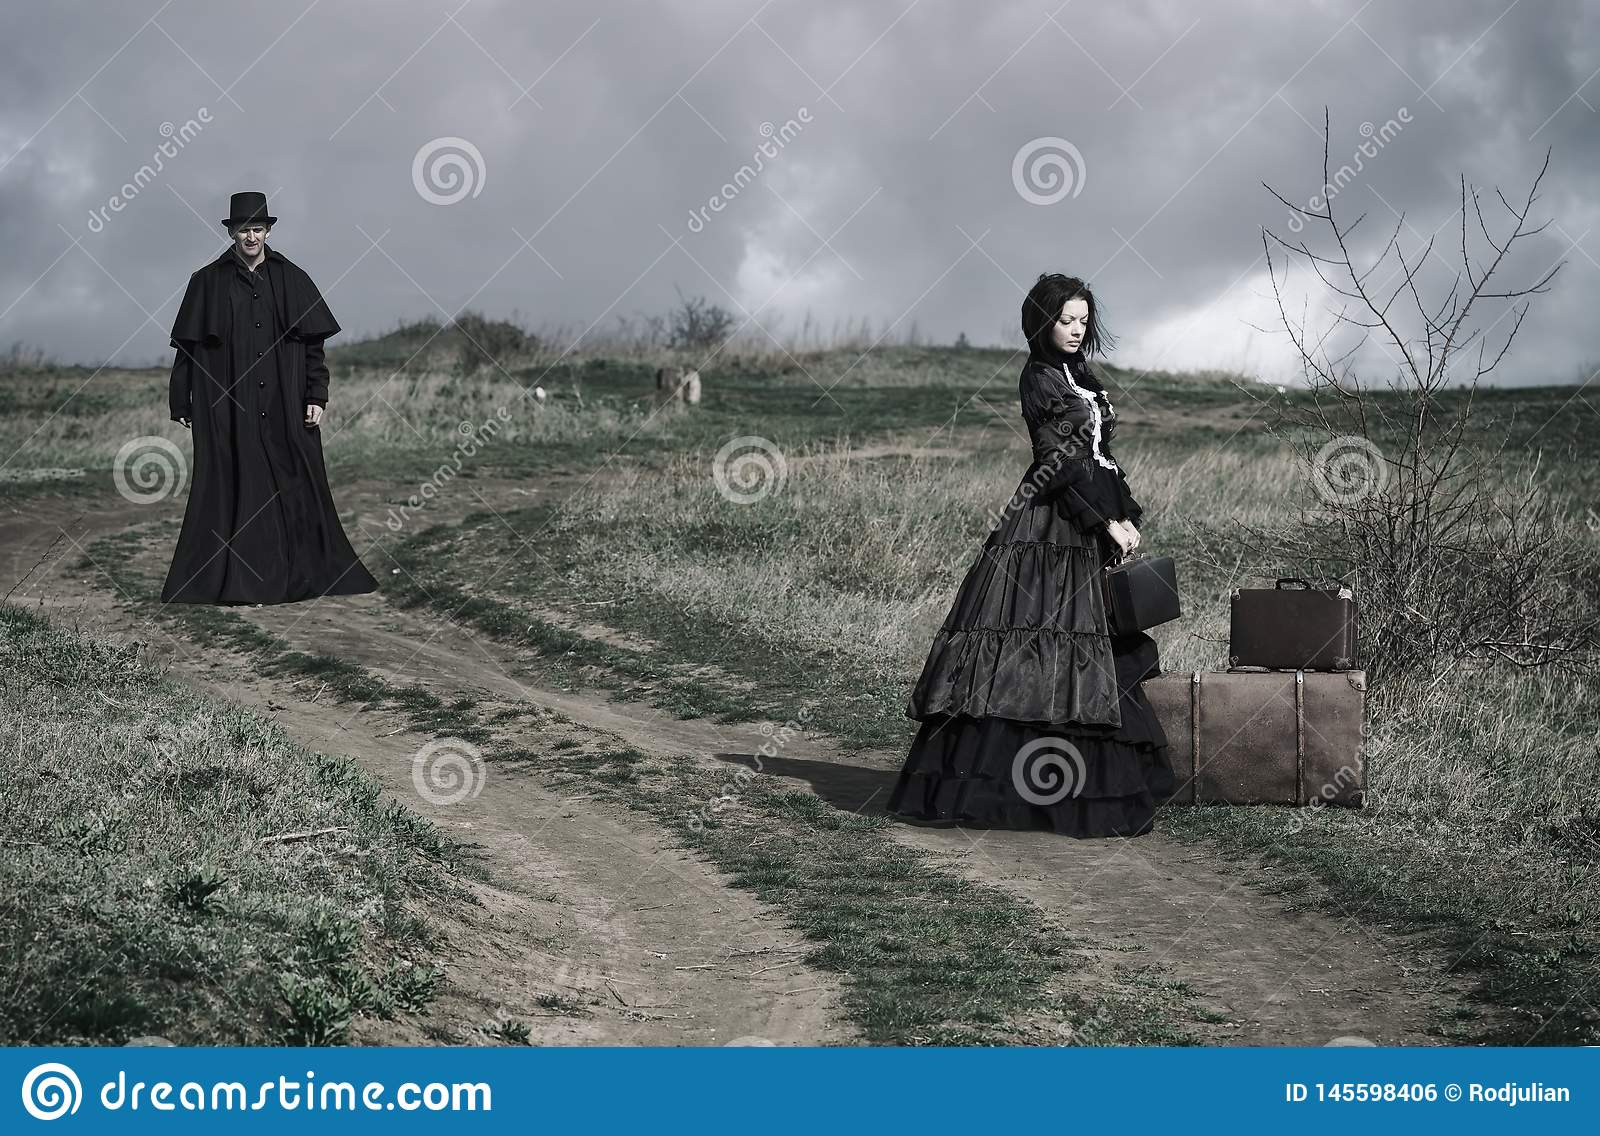 Portrait of a victorian lady in black sitting on the road with her luggage and gentleman walking down the road